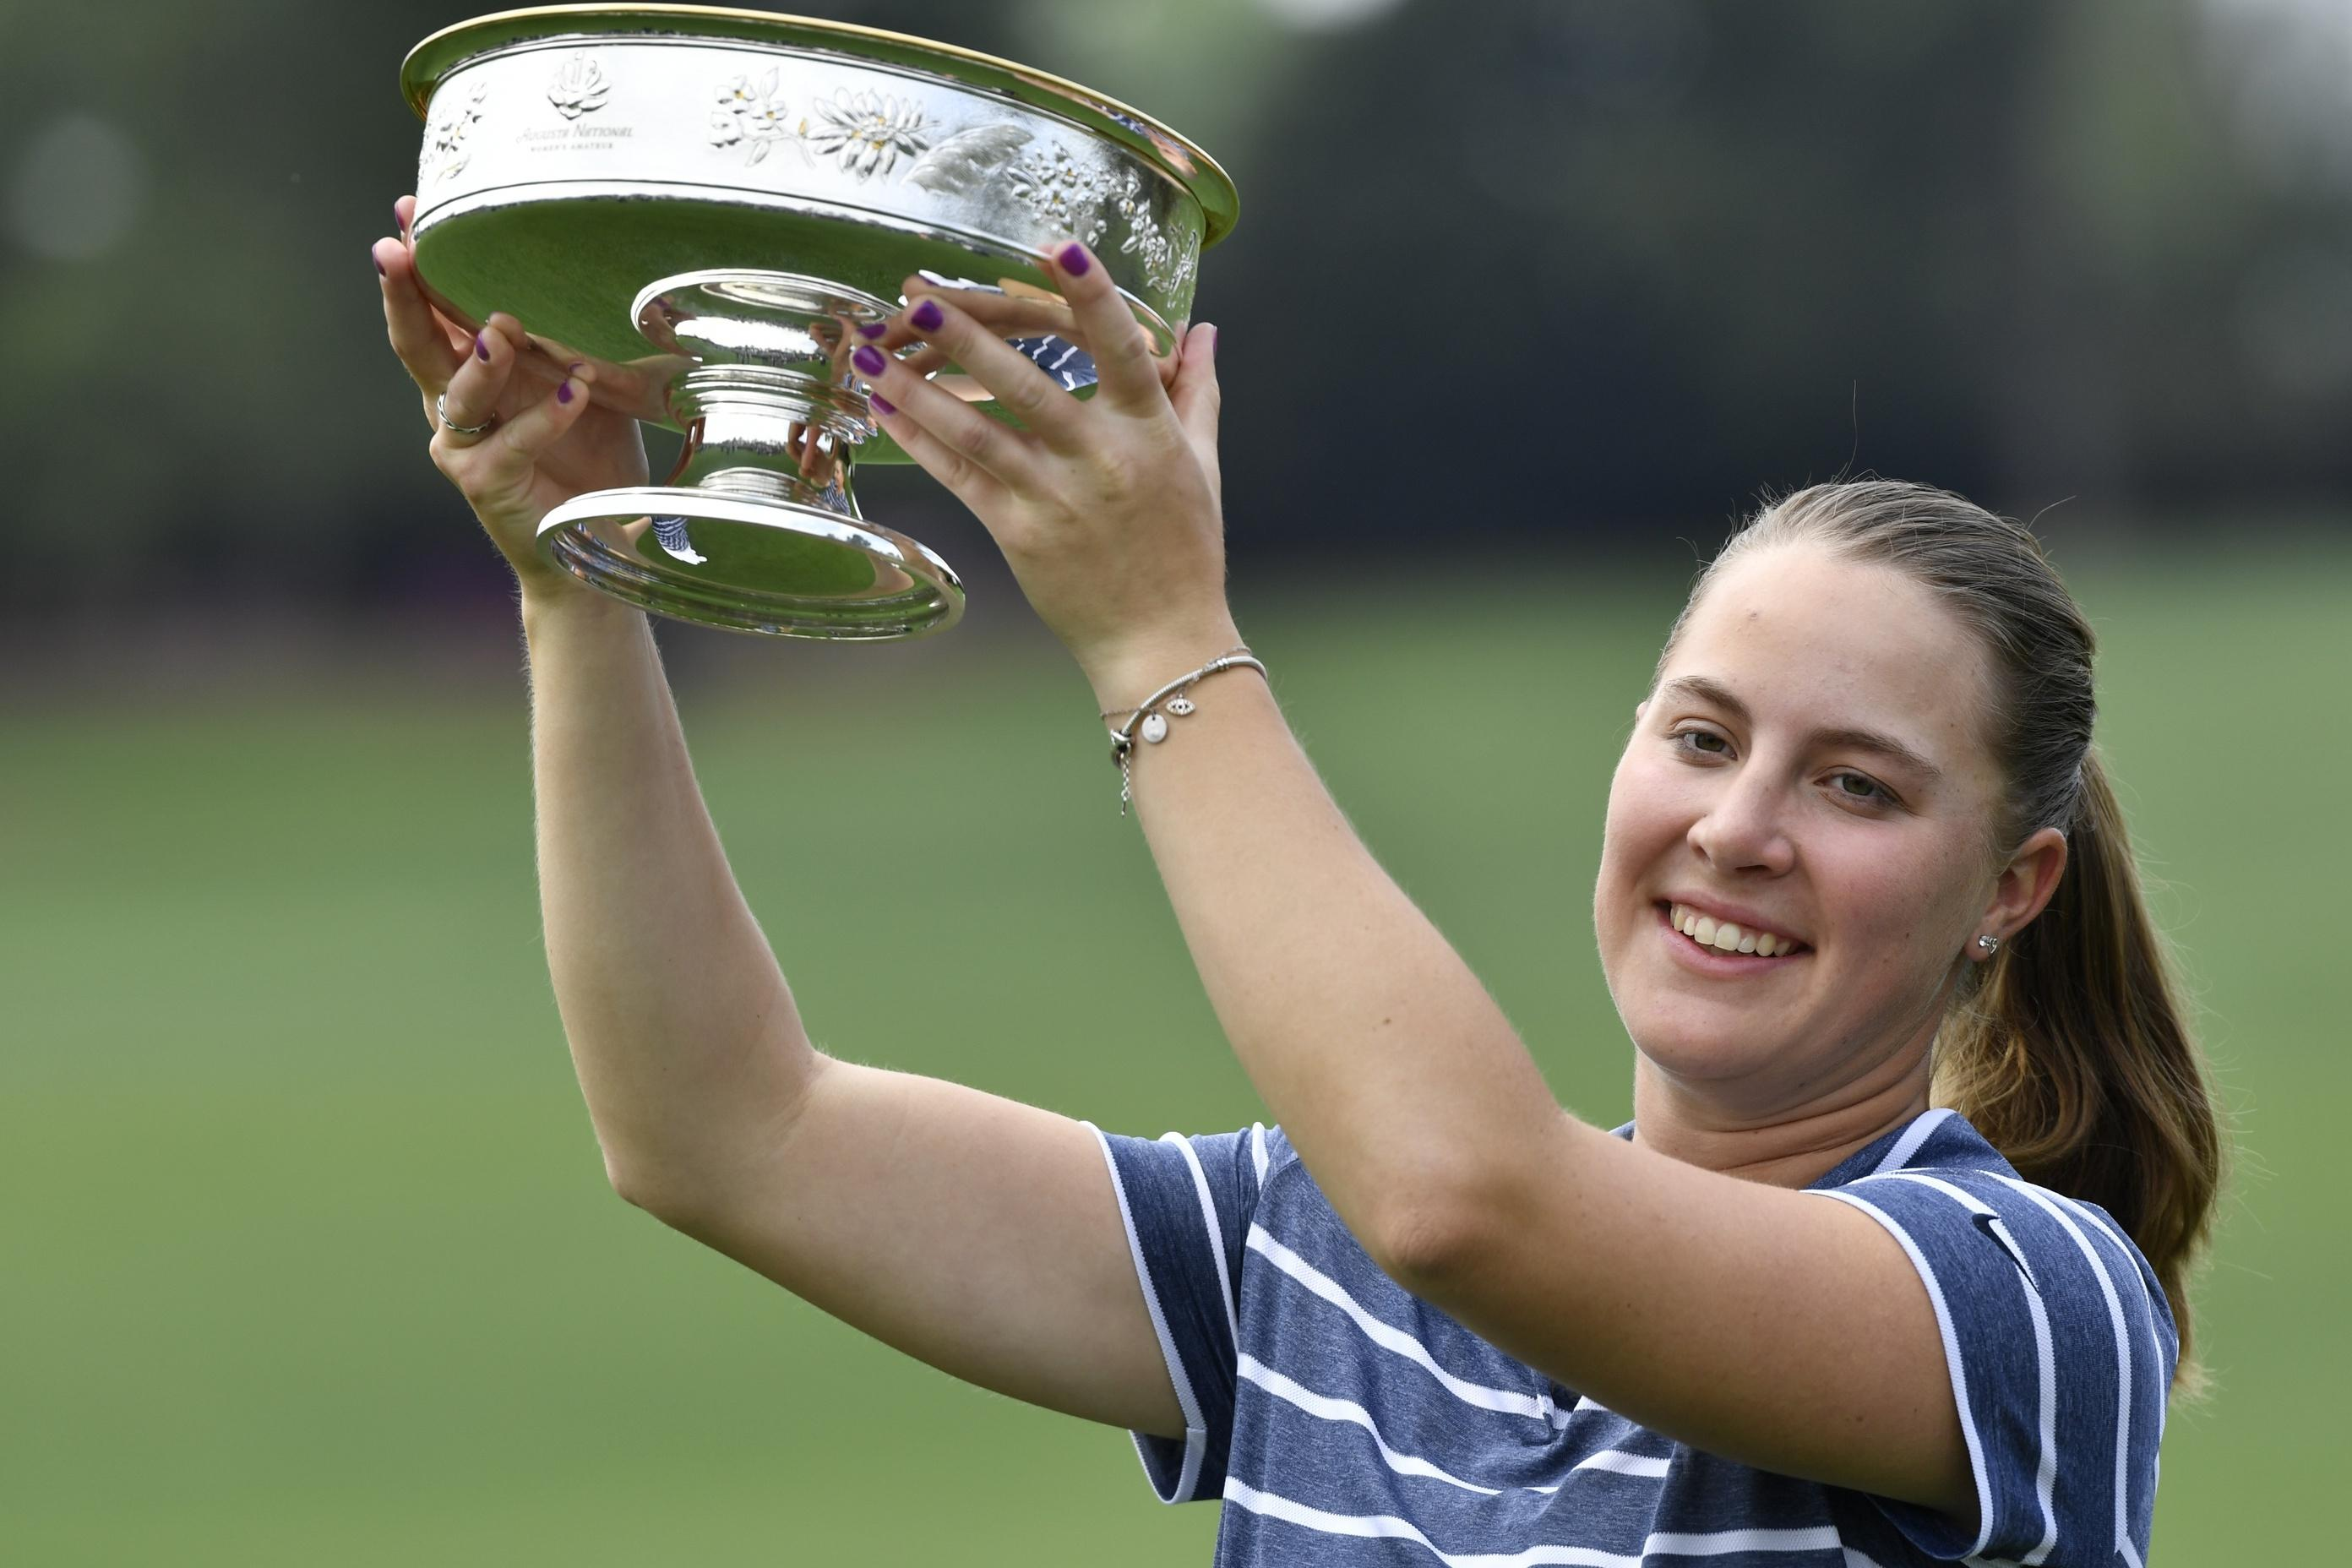 NCAA champion Jennifer Kupcho wins Augusta National Women's Amateur.